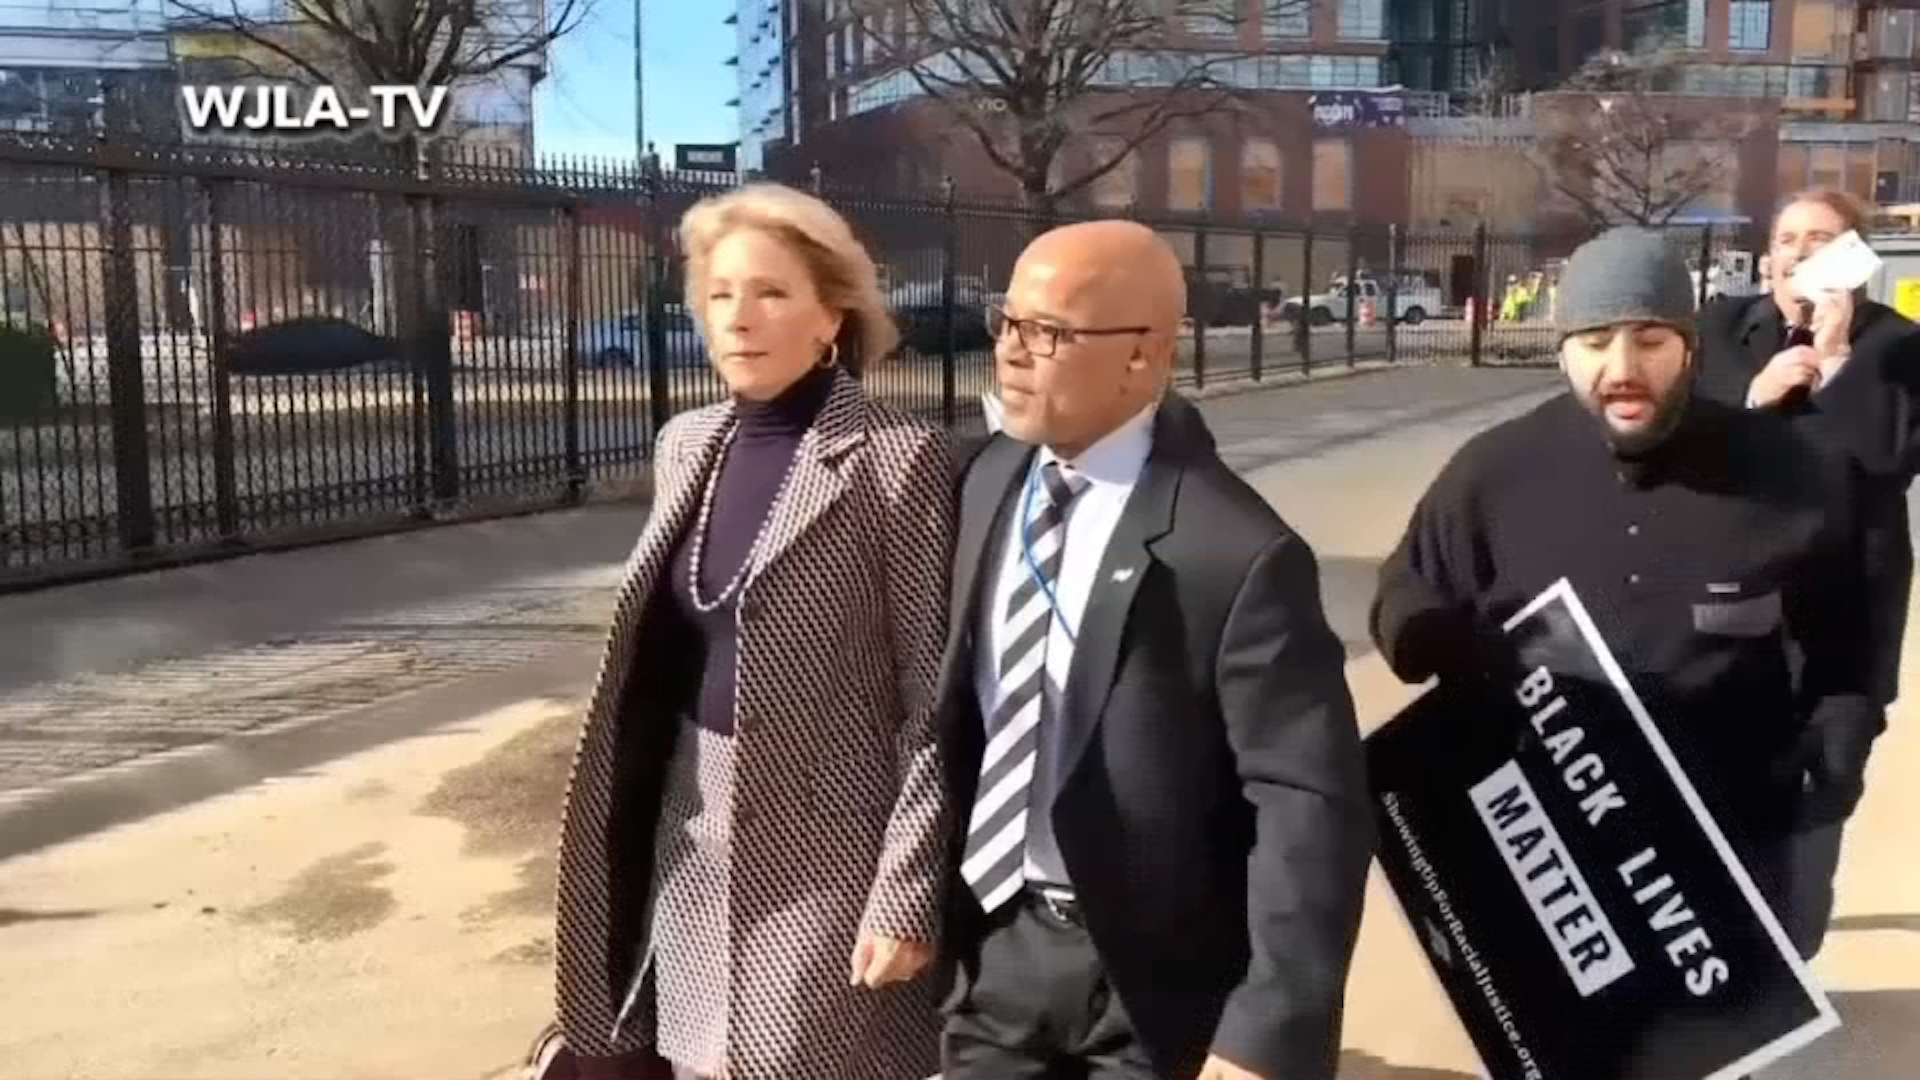 This video of Betsy DeVos being blocked by protesters shows what a powder keg our politics are